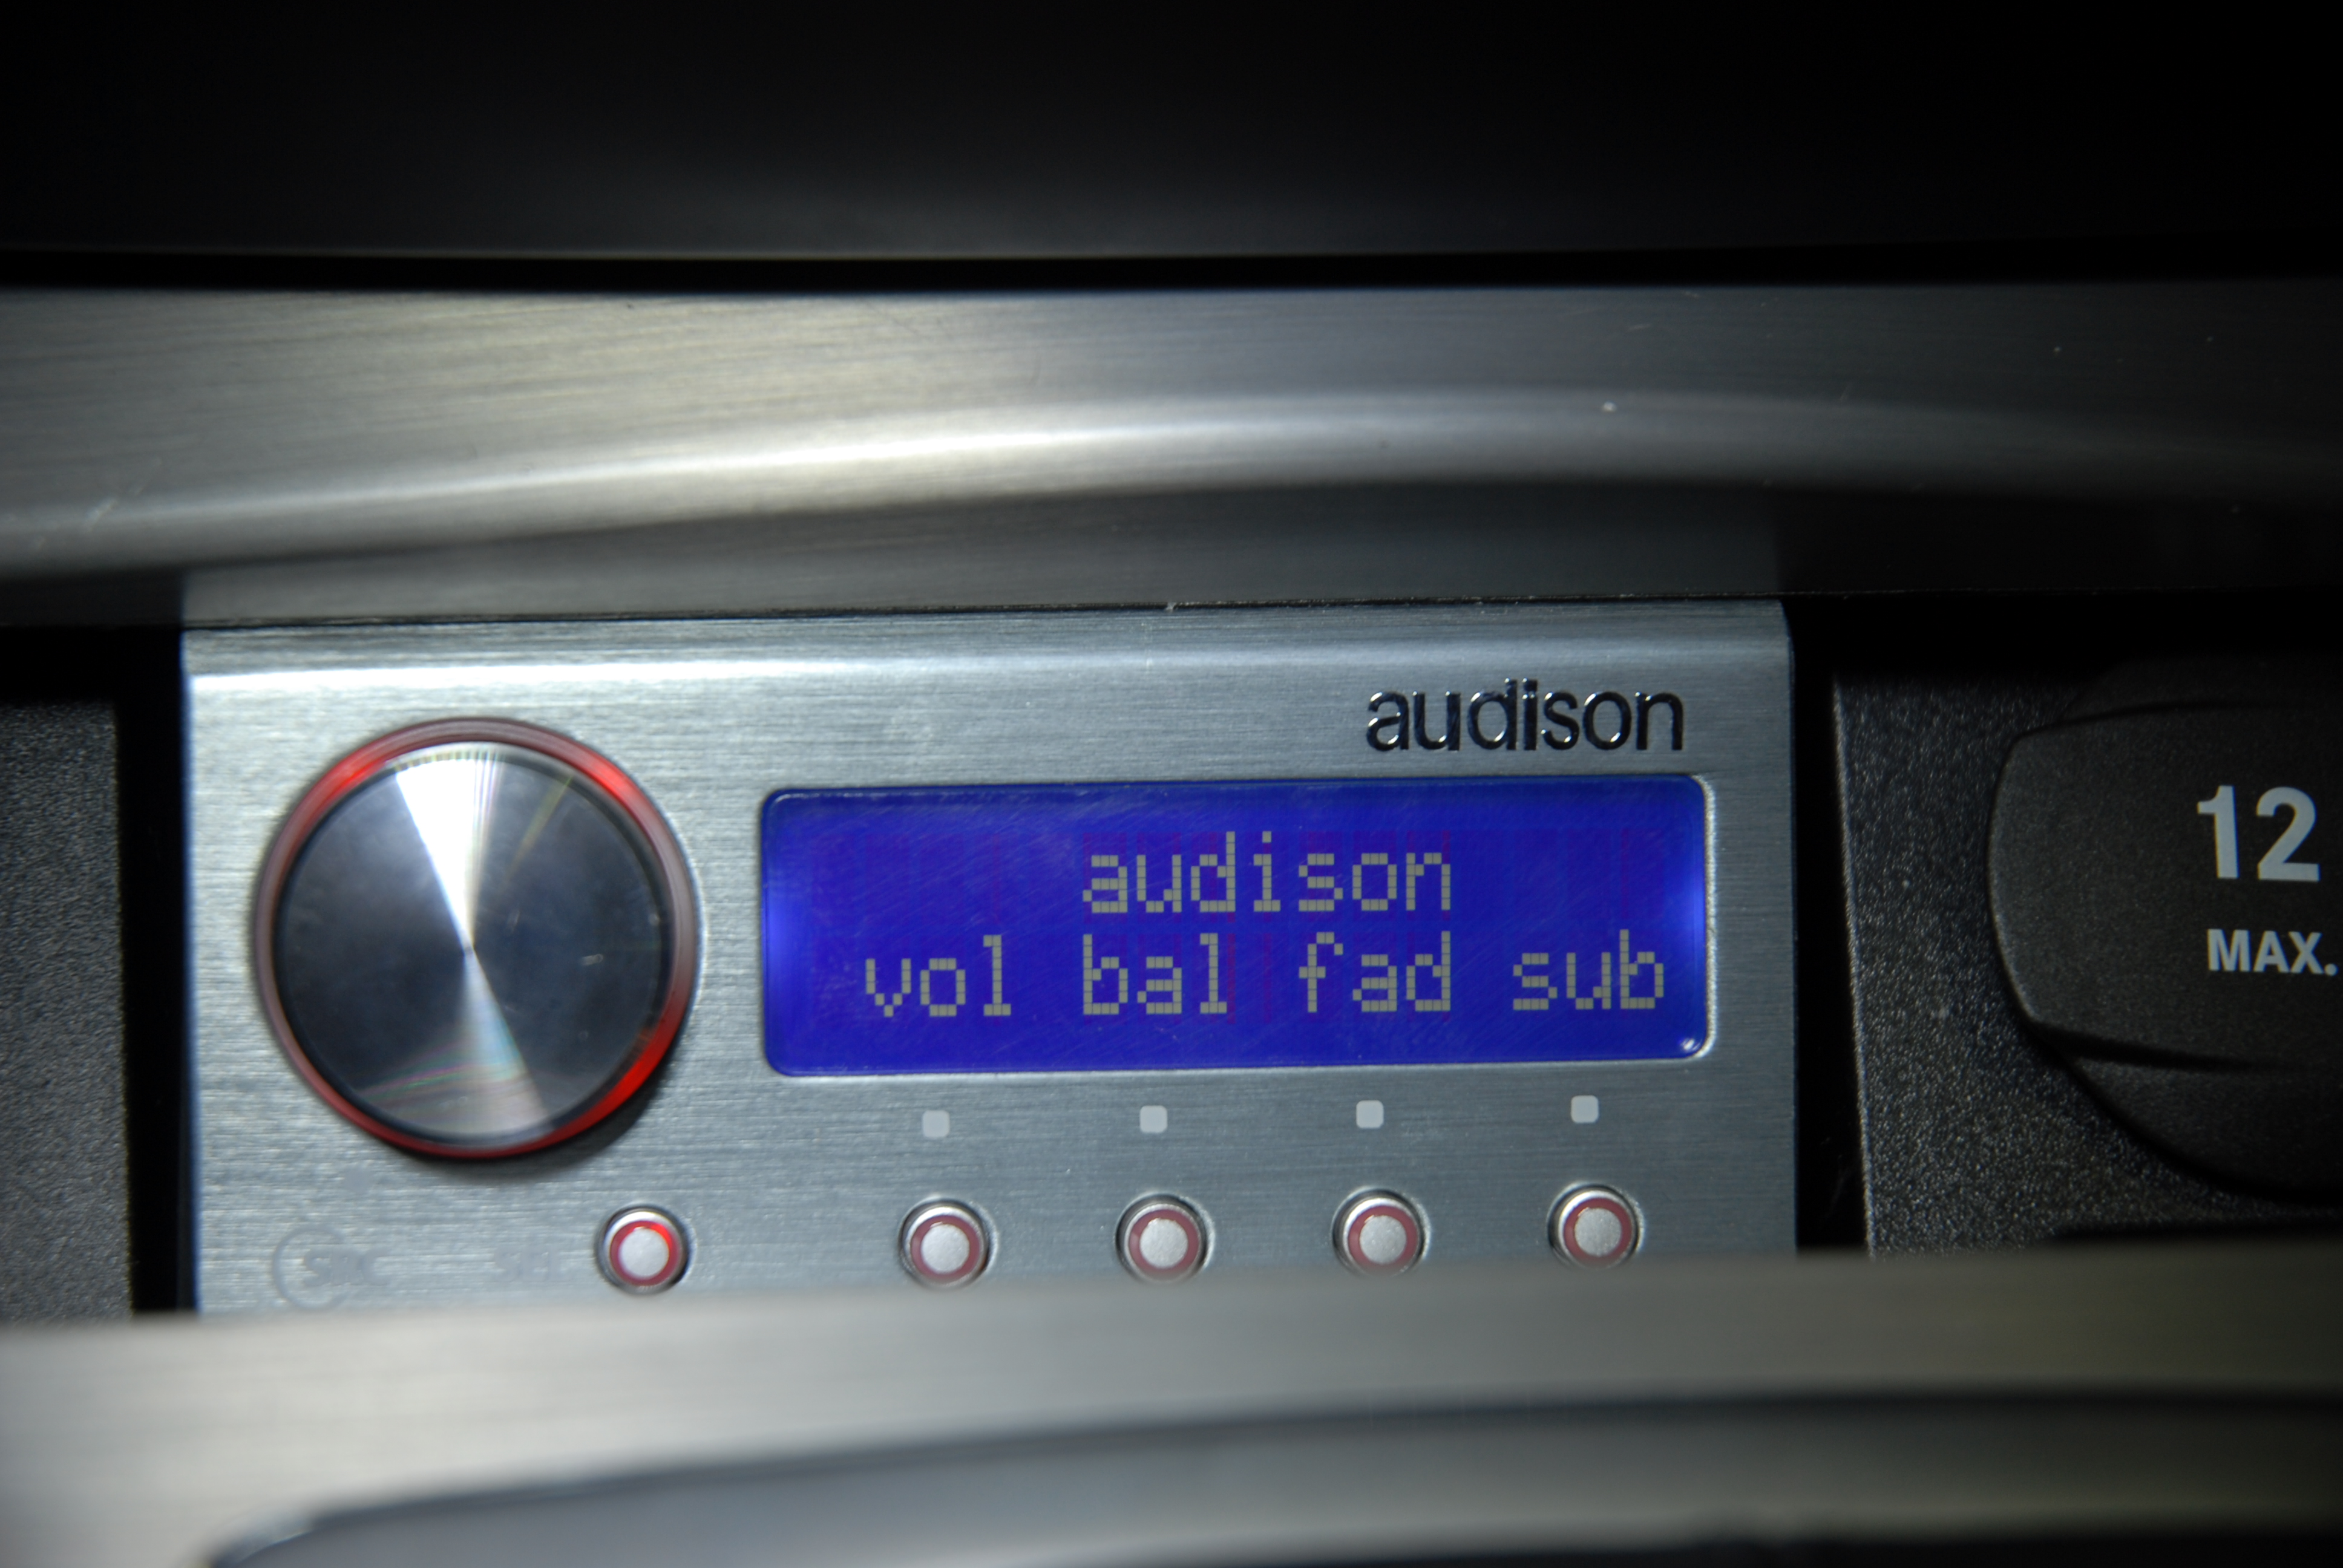 audison thesis car audio For sale audison av51 hd car  the drc also enables remote access to the functions of the audison thesis th  av 51k hd is the first car audio.